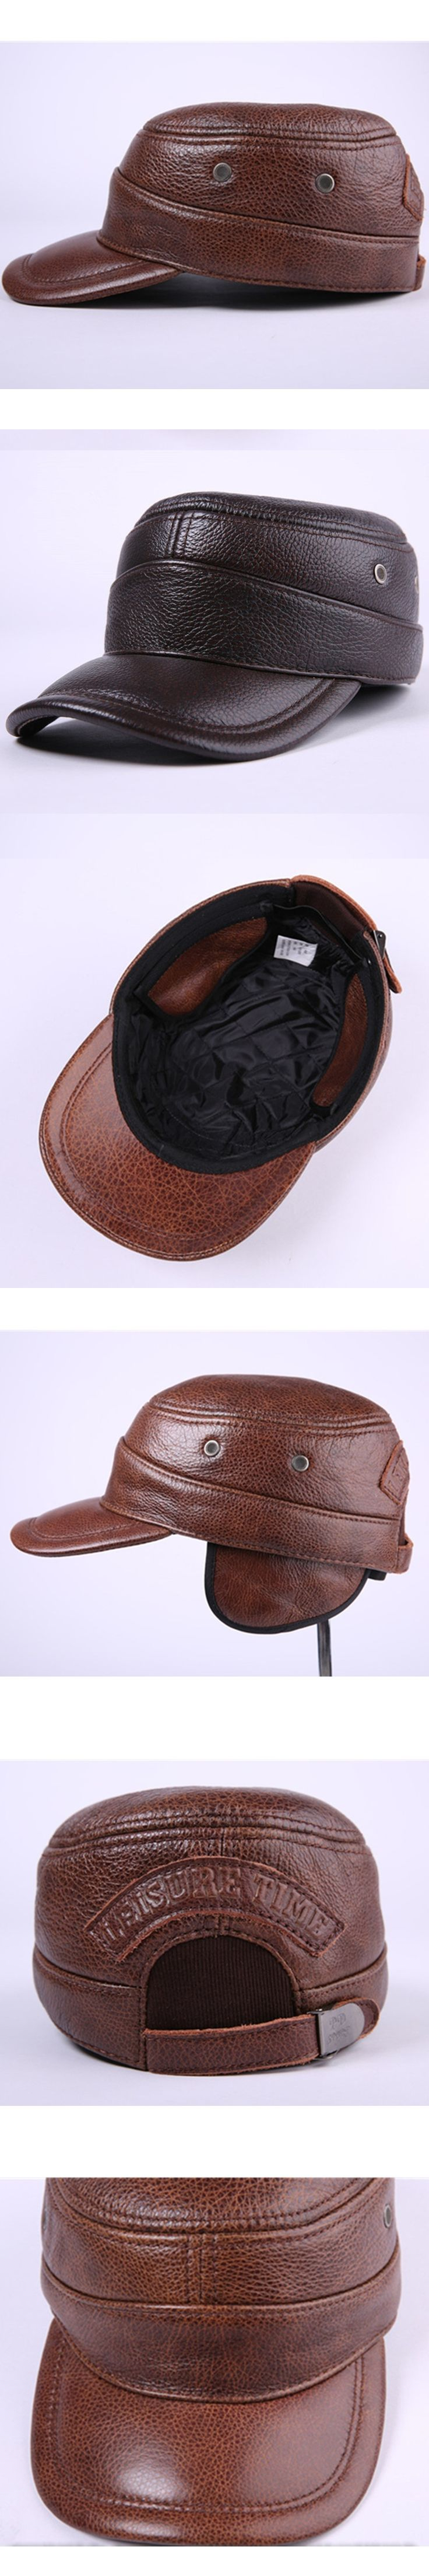 Winter Men's Hats Thicken Leather Excellent Baseball Caps With Warm Earmuffs Adjustable Head Size Bone Peaked Cap Dad Hat